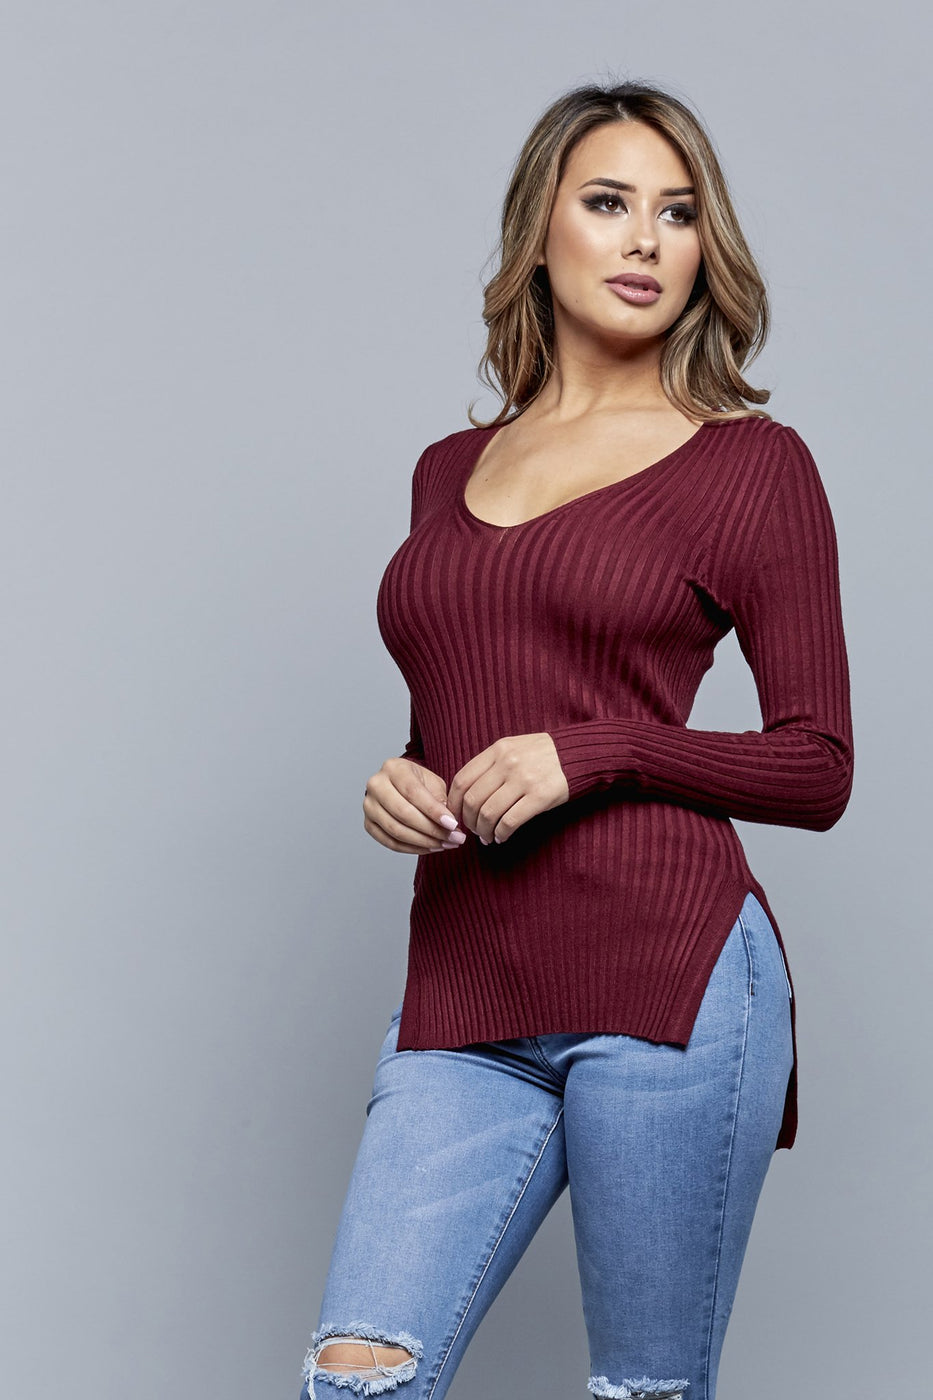 SWEATER WEATHER TOP | BURGUNDY